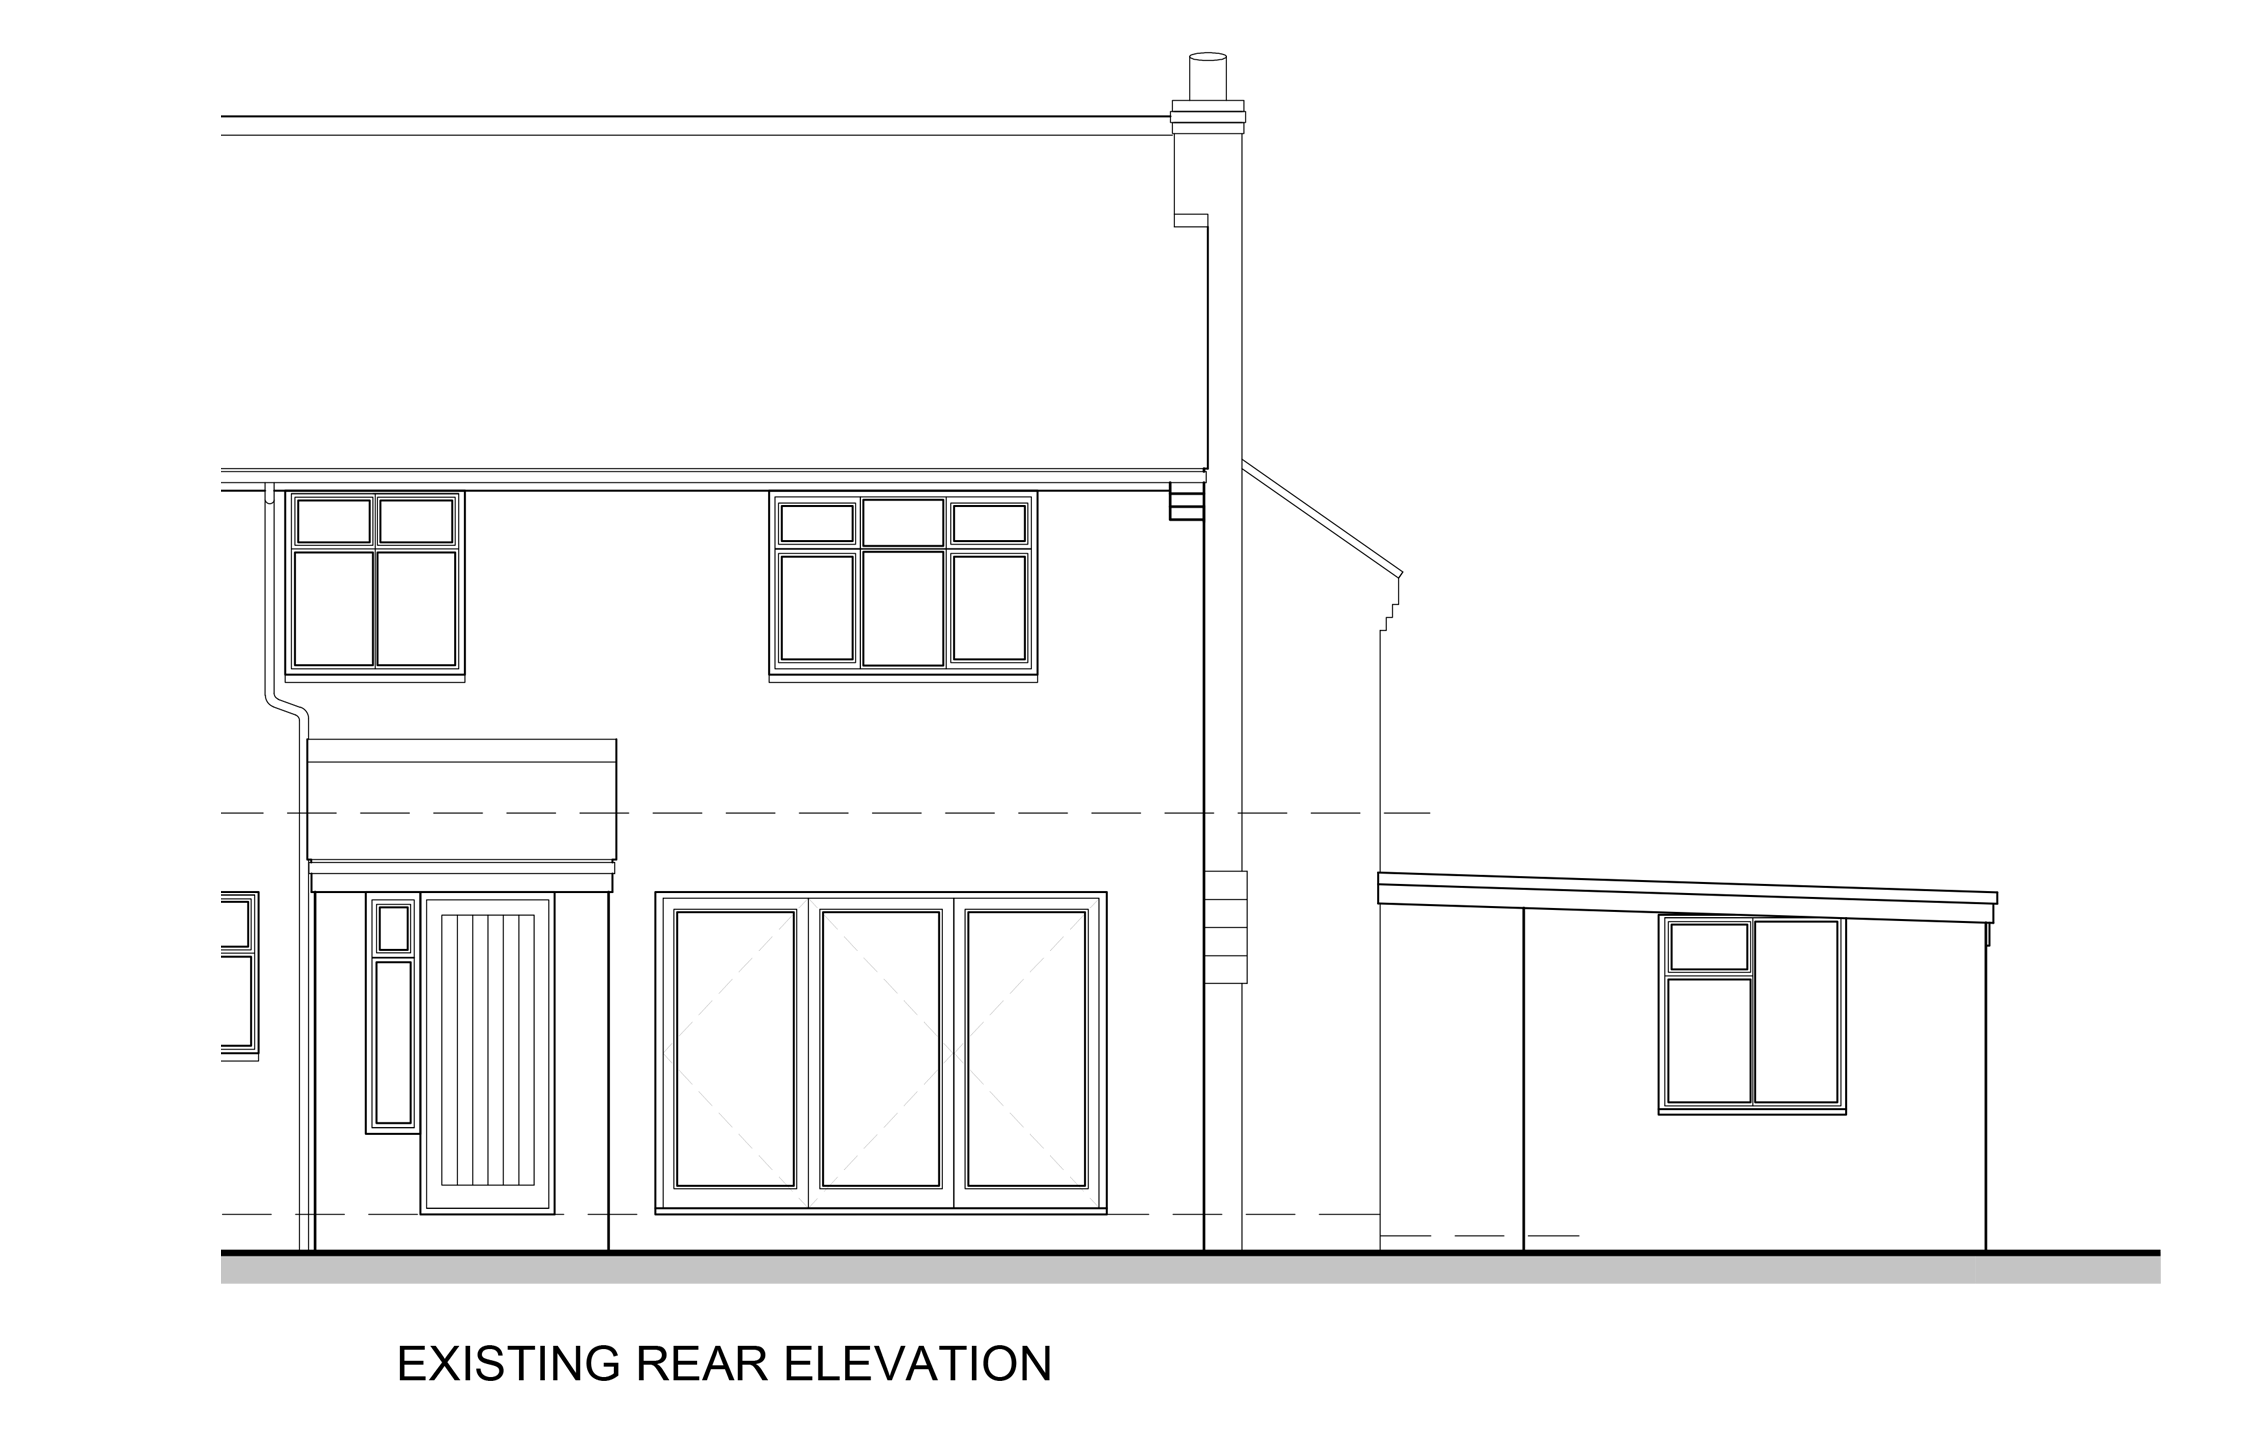 Rear Elevation Existing